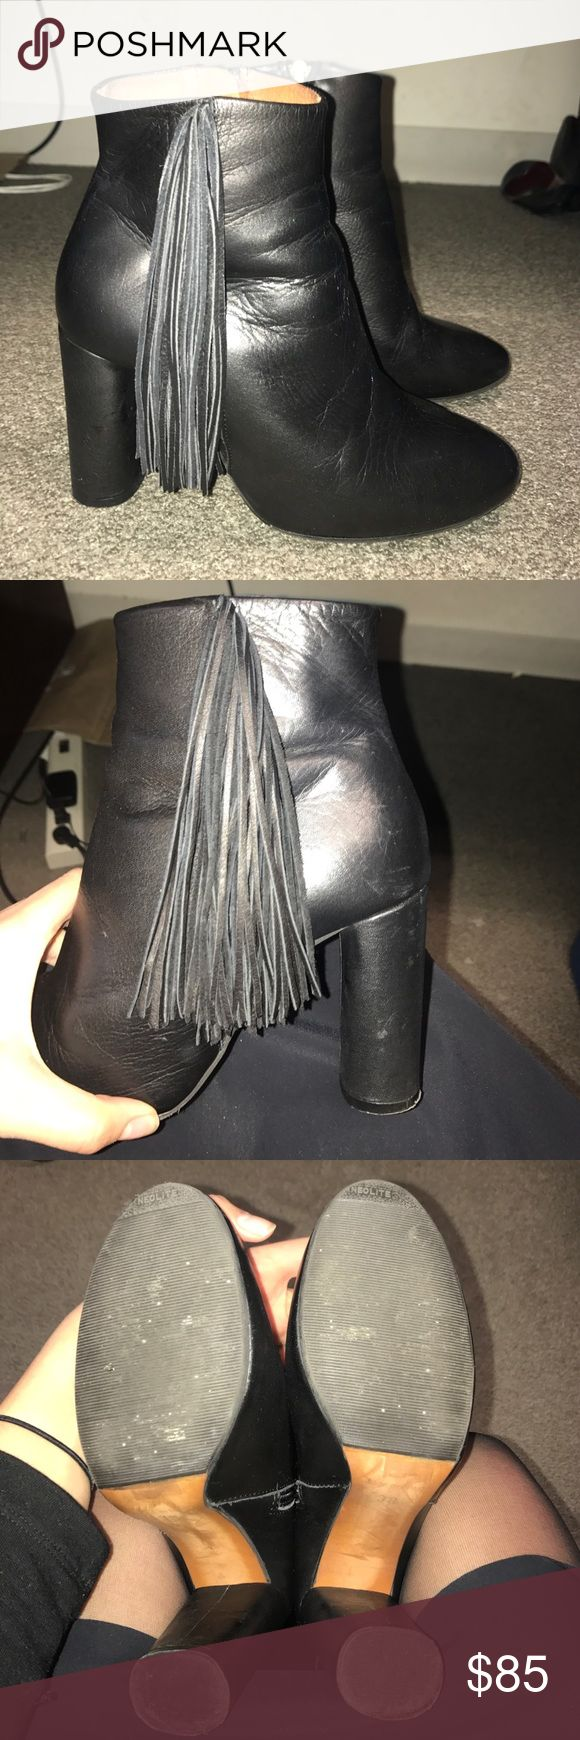 TOPSHOP Black Leather Fringe Booties Size 38 Worn probably about 4 times and bought at the TOPSHOP store in California. Size 38, no box, smoke free home. Topshop Shoes Heeled Boots